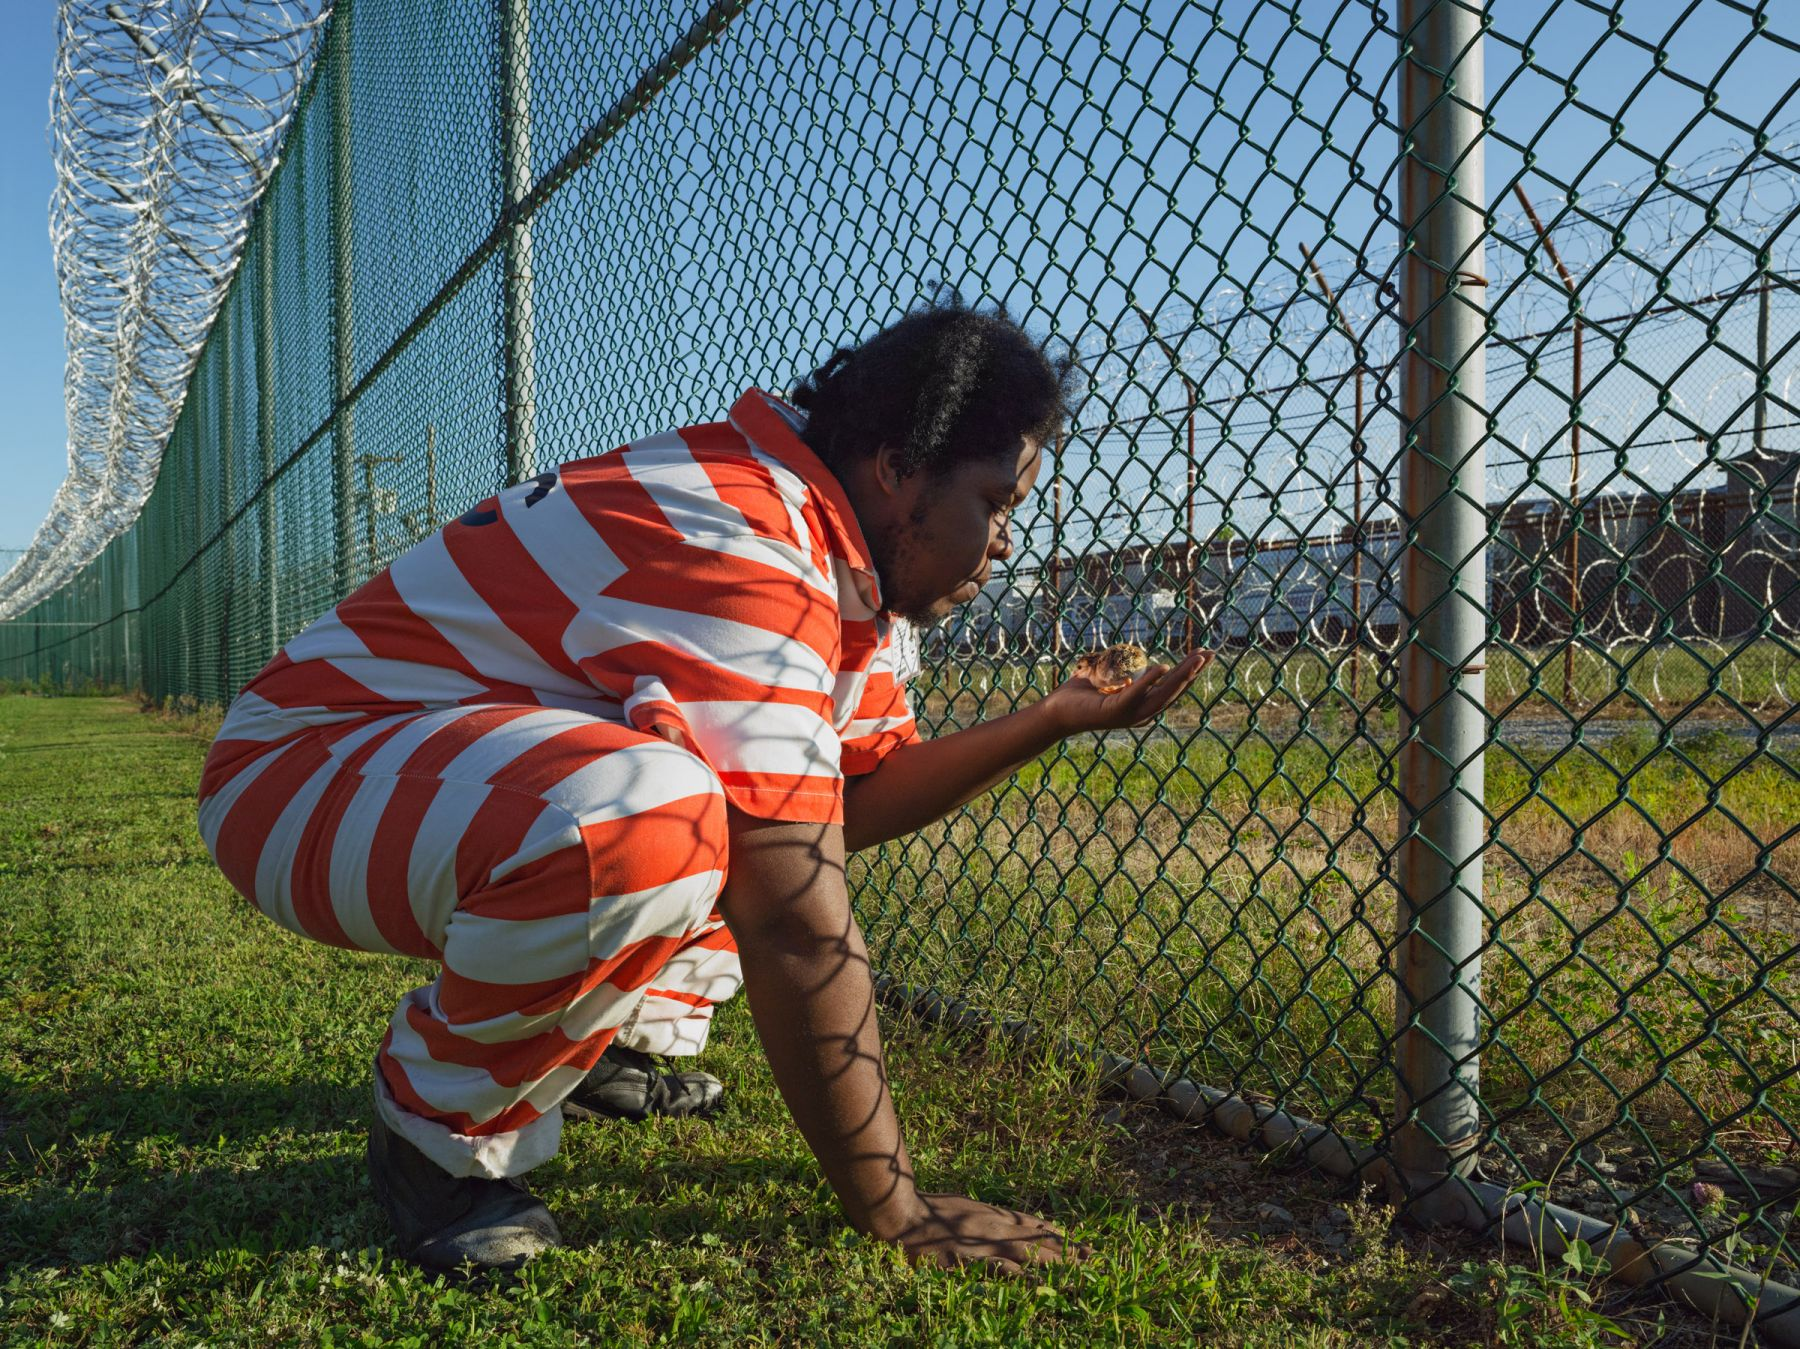 LUCAS FOGLIATroy with a Guinea Hen Chick, GreenHouse Program, Rikers Island Jail Complex, New York, 2014, Pigment Print34 x 44 inchesEdition of 8